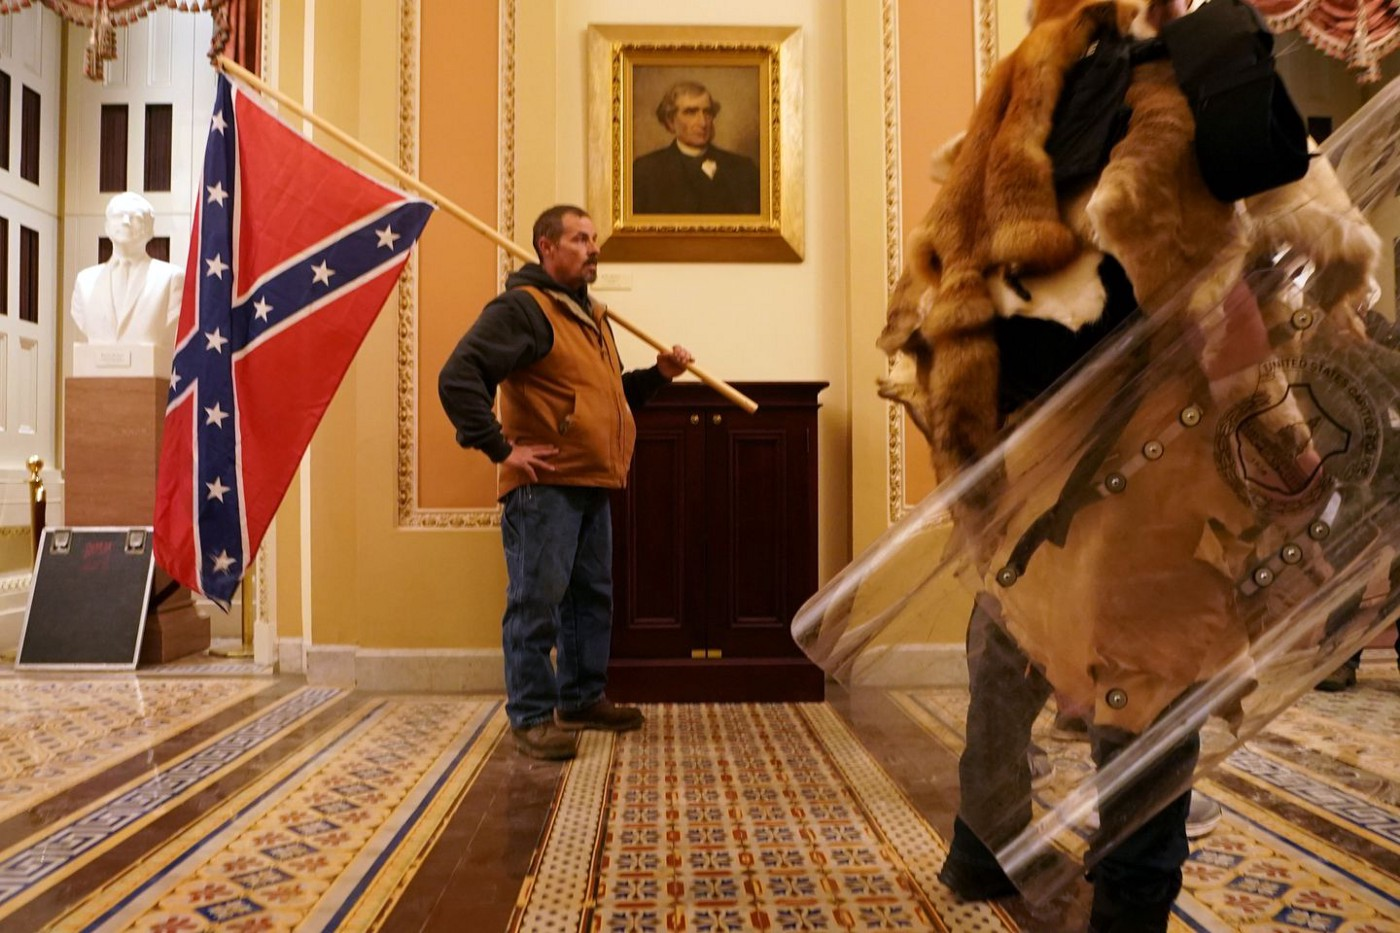 Man stands inside the U.S. Capitol with a confederate flag resting on his shoulder